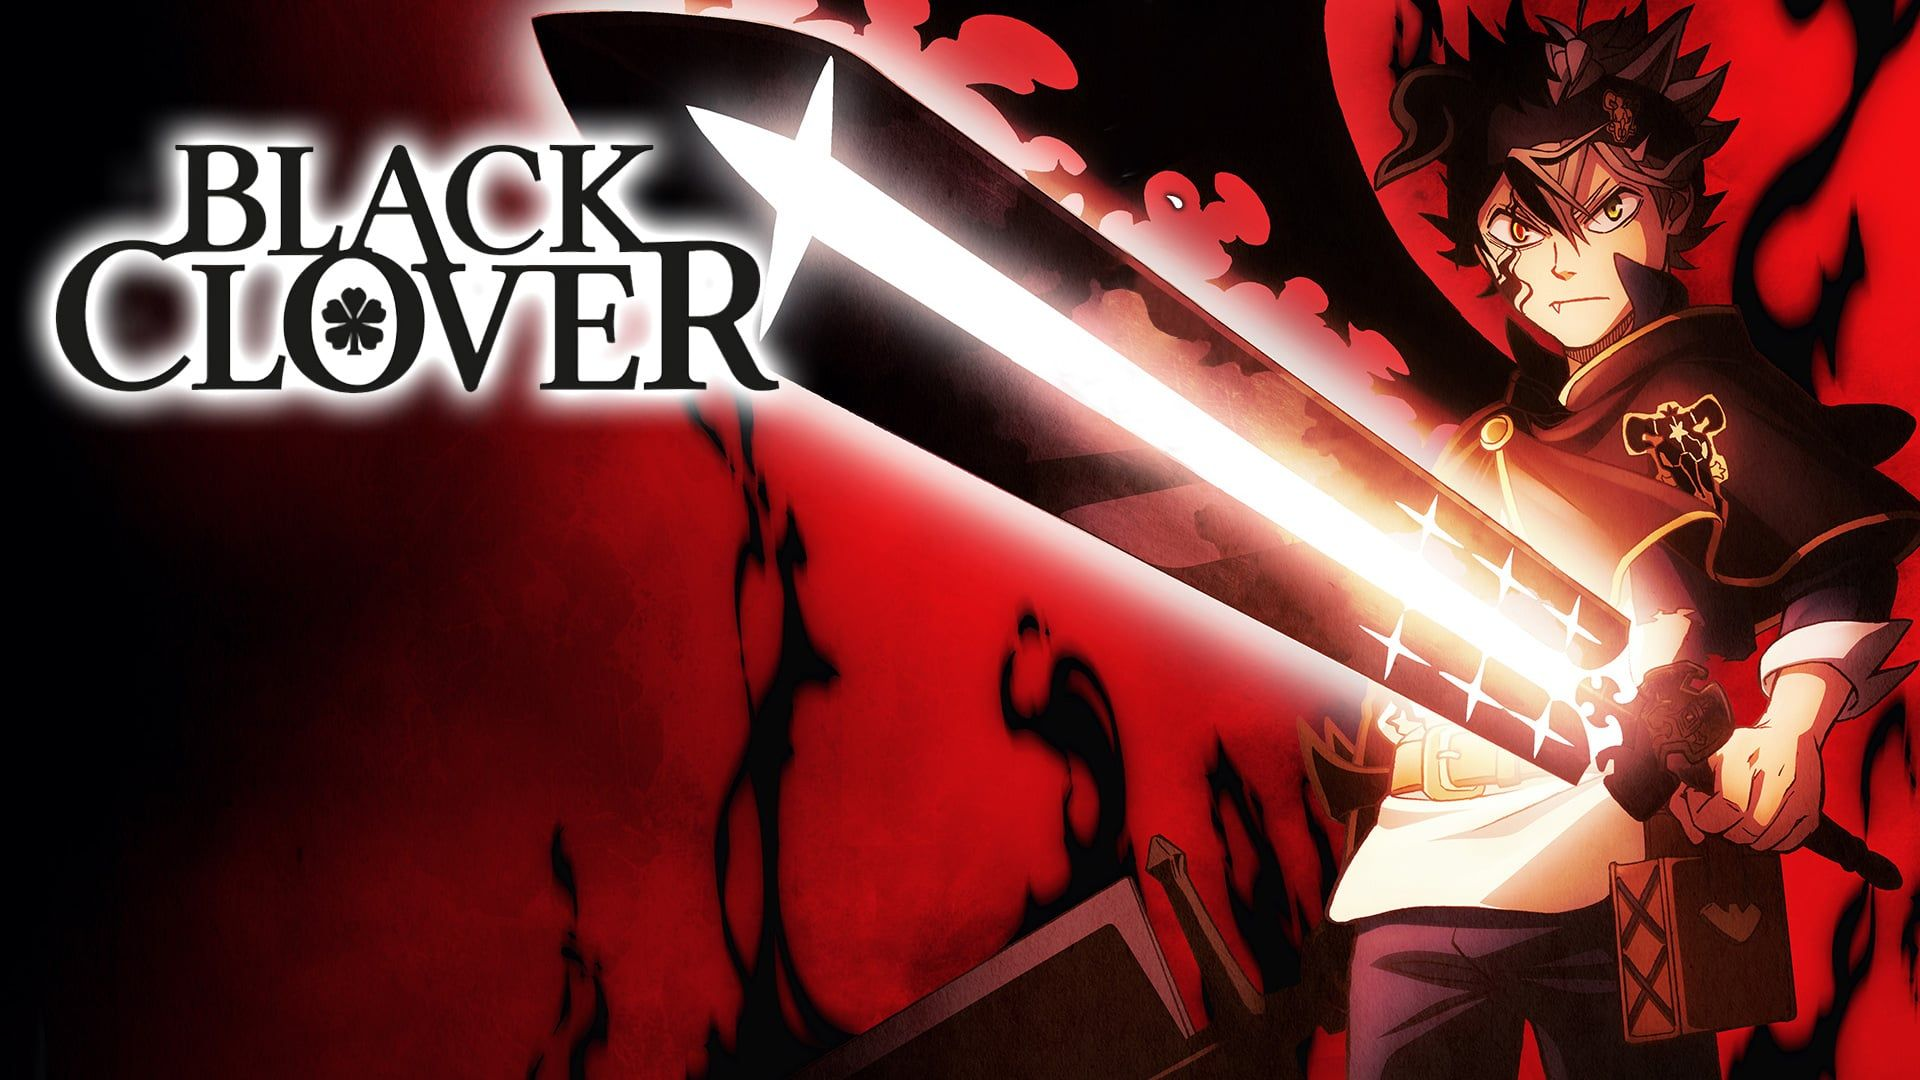 Black Clover Episode 158 Release Date and Time